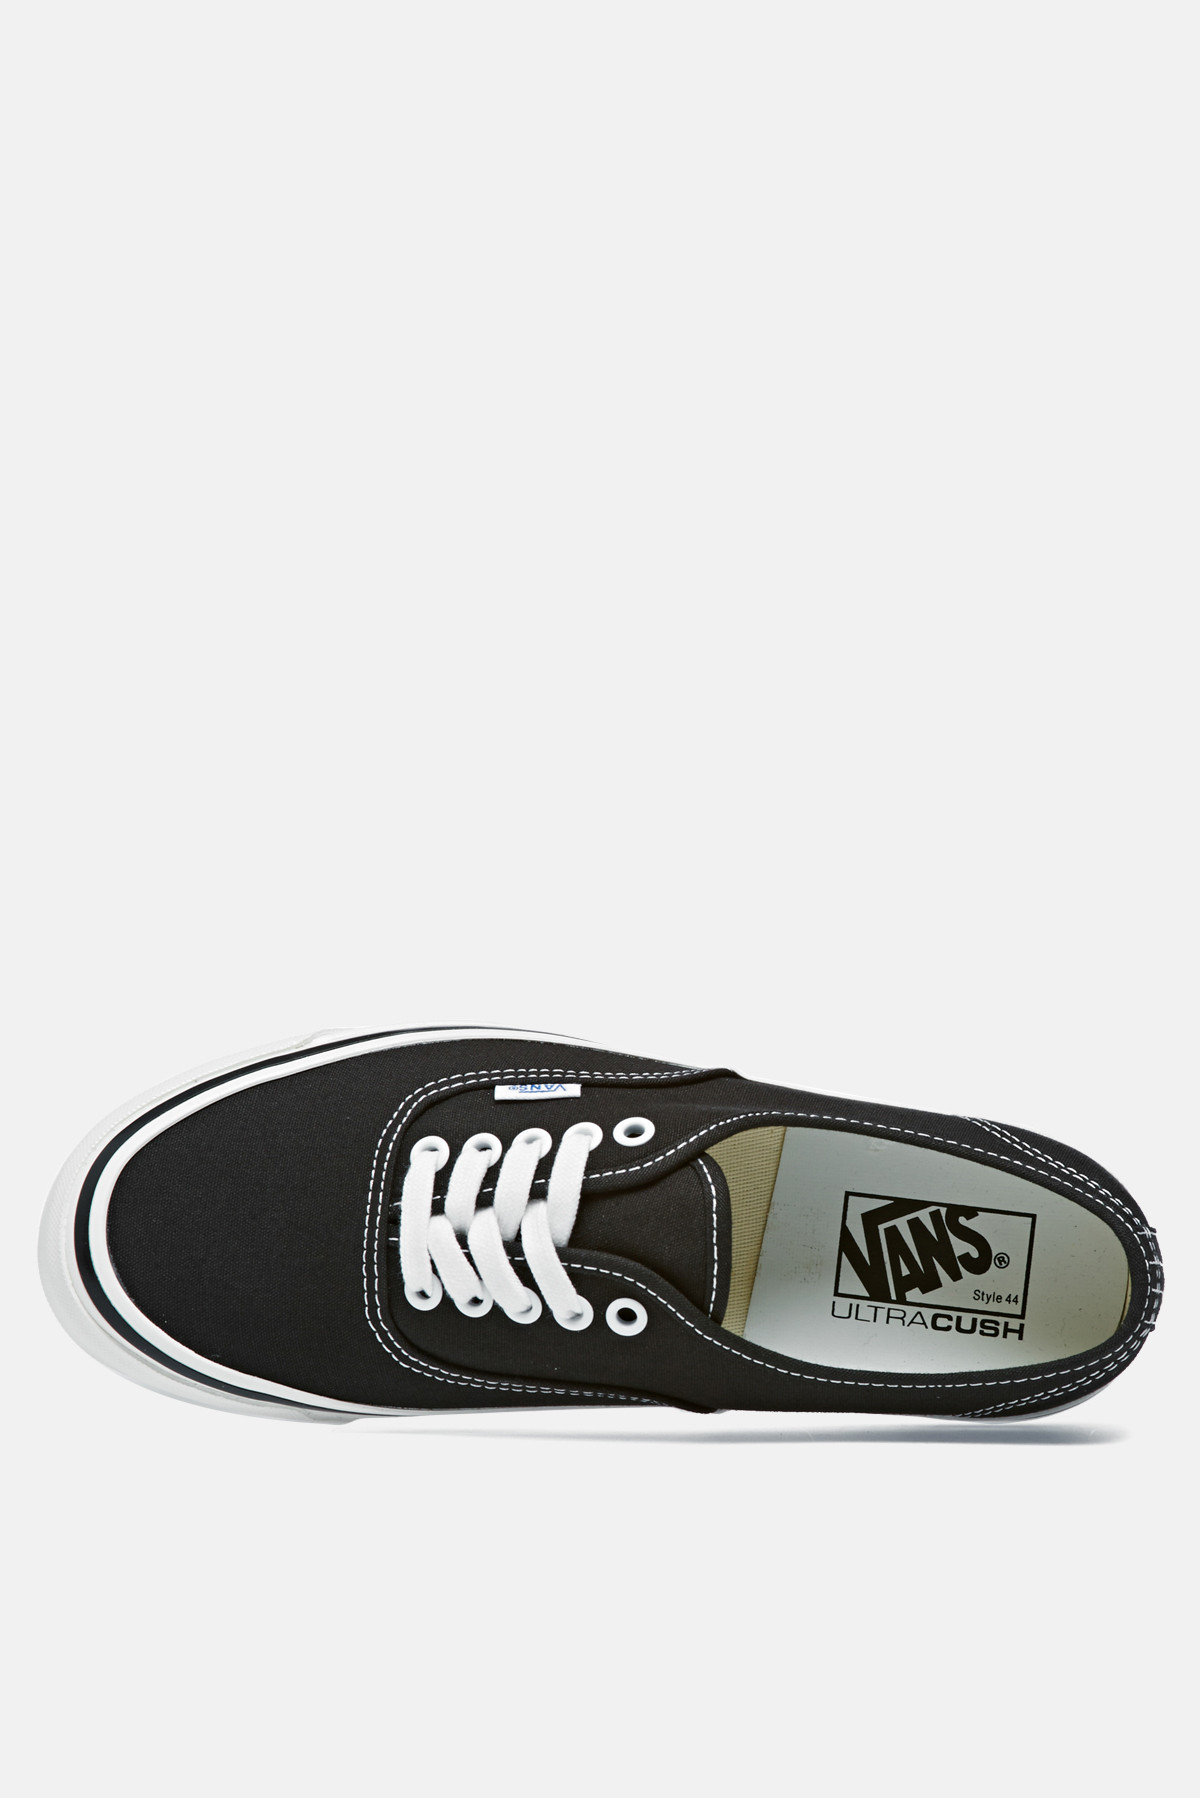 Vans Anaheim Authentic 44 Dx Shoes available from Priory